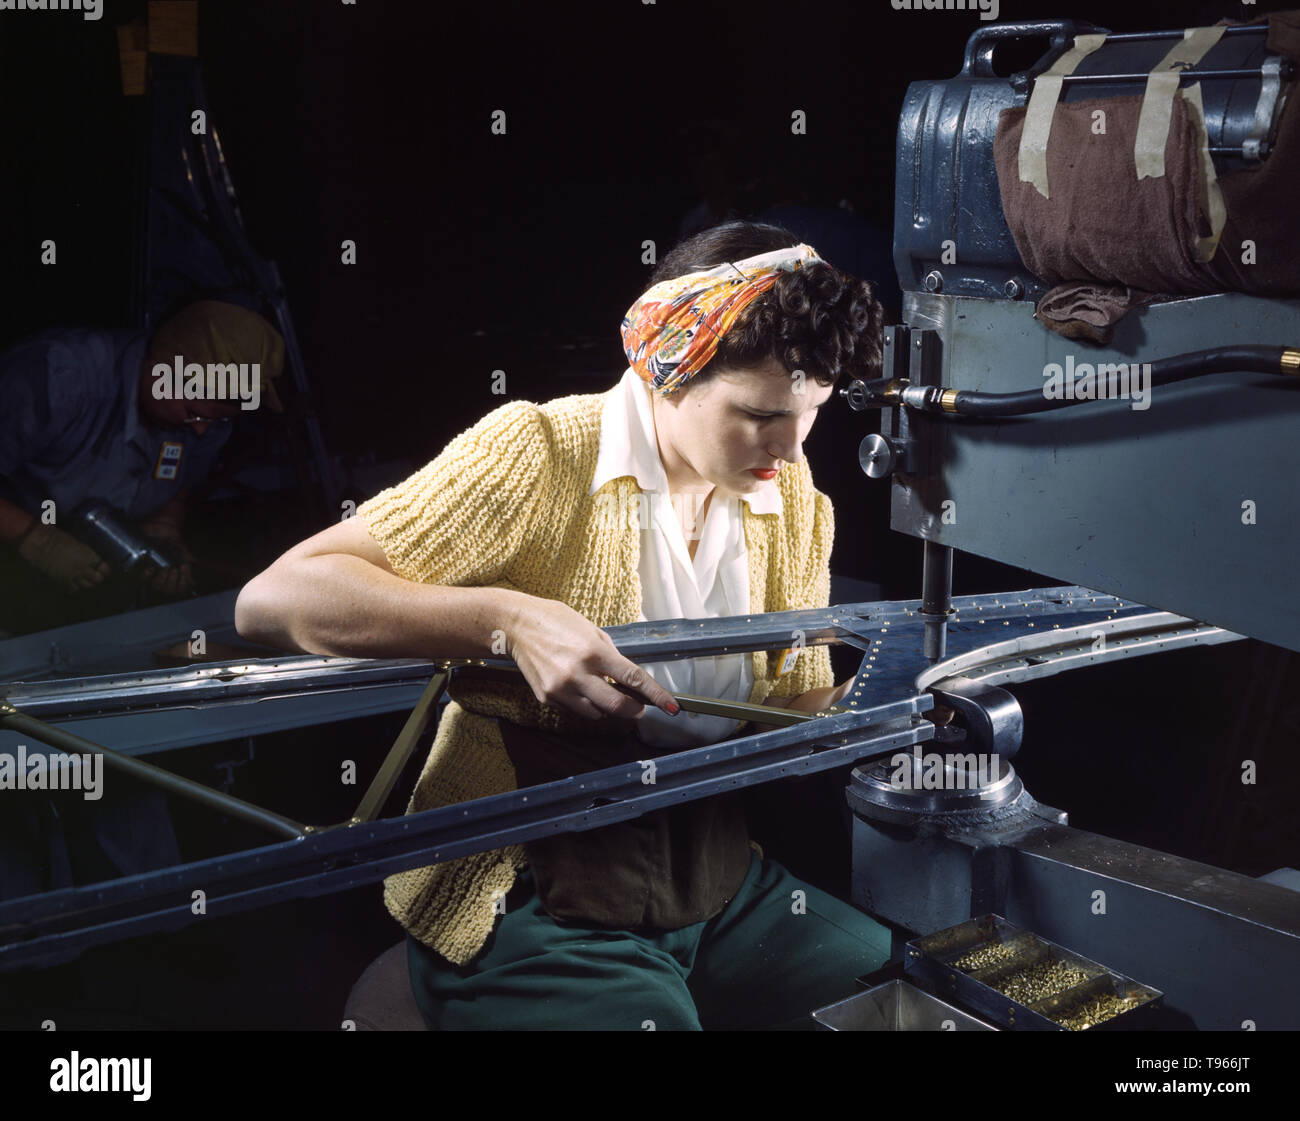 A girl riveting machine operator at the Douglas Aircraft Company plant joins sections of wing ribs to reinforce the inner wing assemblies of B-17F heavy bombers, Long Beach, Calif. Better known as the Flying Fortress, the B-17F bomber is a later model of the B-17, which distinguished itself in action in the south Pacific, over Germany and elsewhere. It is a long range, high altitude, heavy bomber, with a crew of seven to nine men - and with armament sufficient to defend itself on daylight missions. Although the image of 'Rosie the Riveter' reflected the industrial work of welders and riveters, - Stock Image